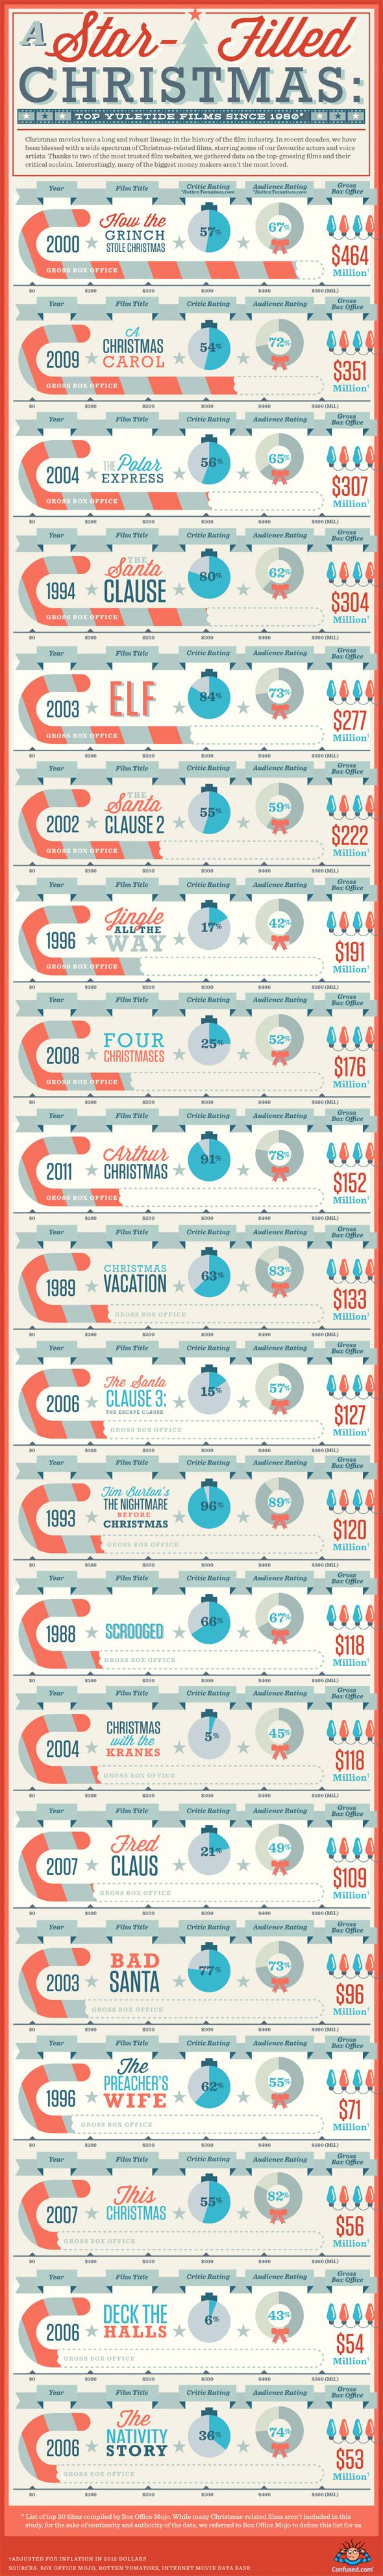 Read an Infographic About the Top-Grossing Christmas Movies Since 1980